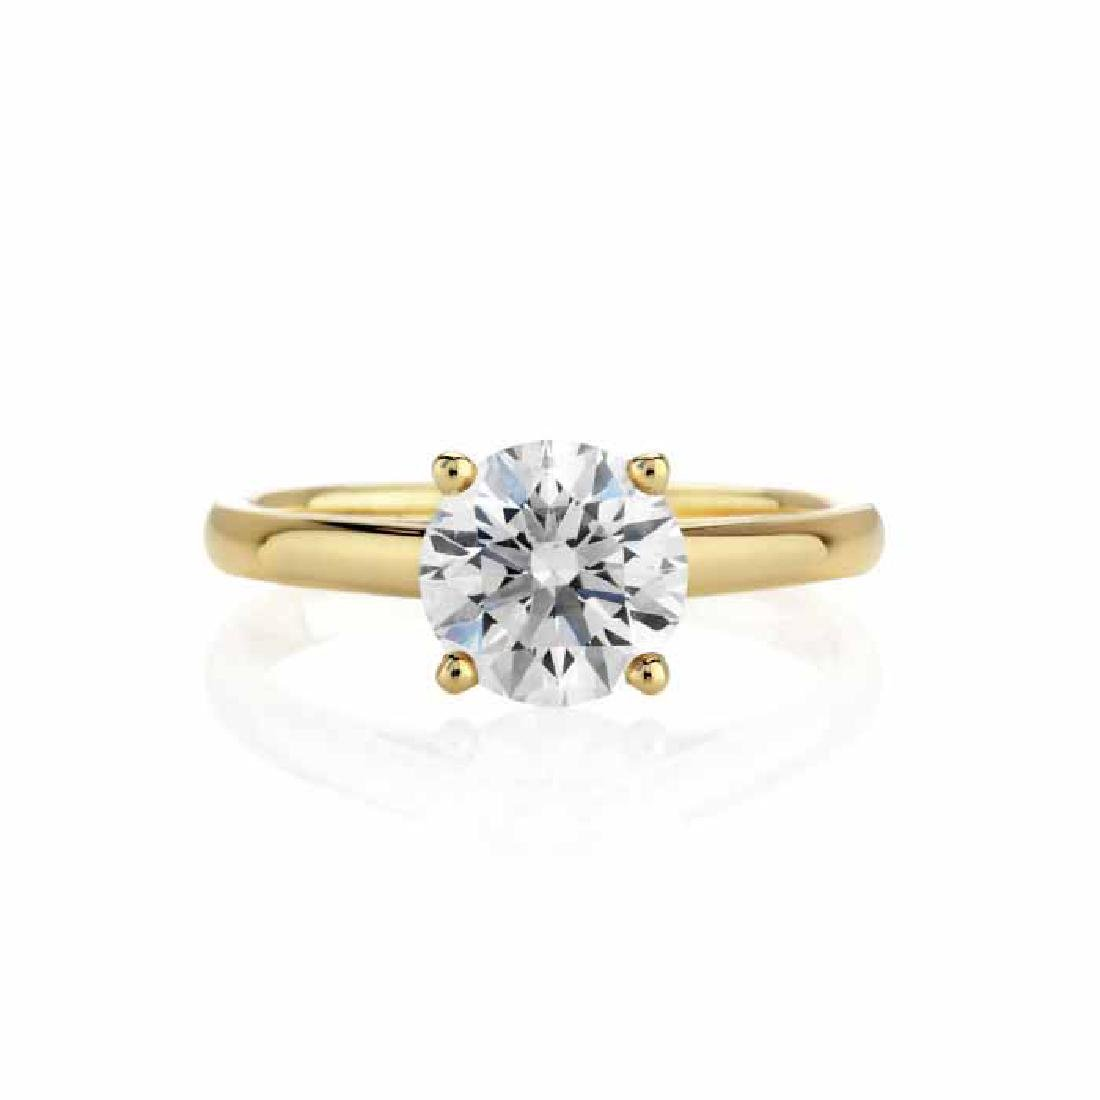 CERTIFIED 0.91 CTW D/VS1 ROUND DIAMOND SOLITAIRE RING I